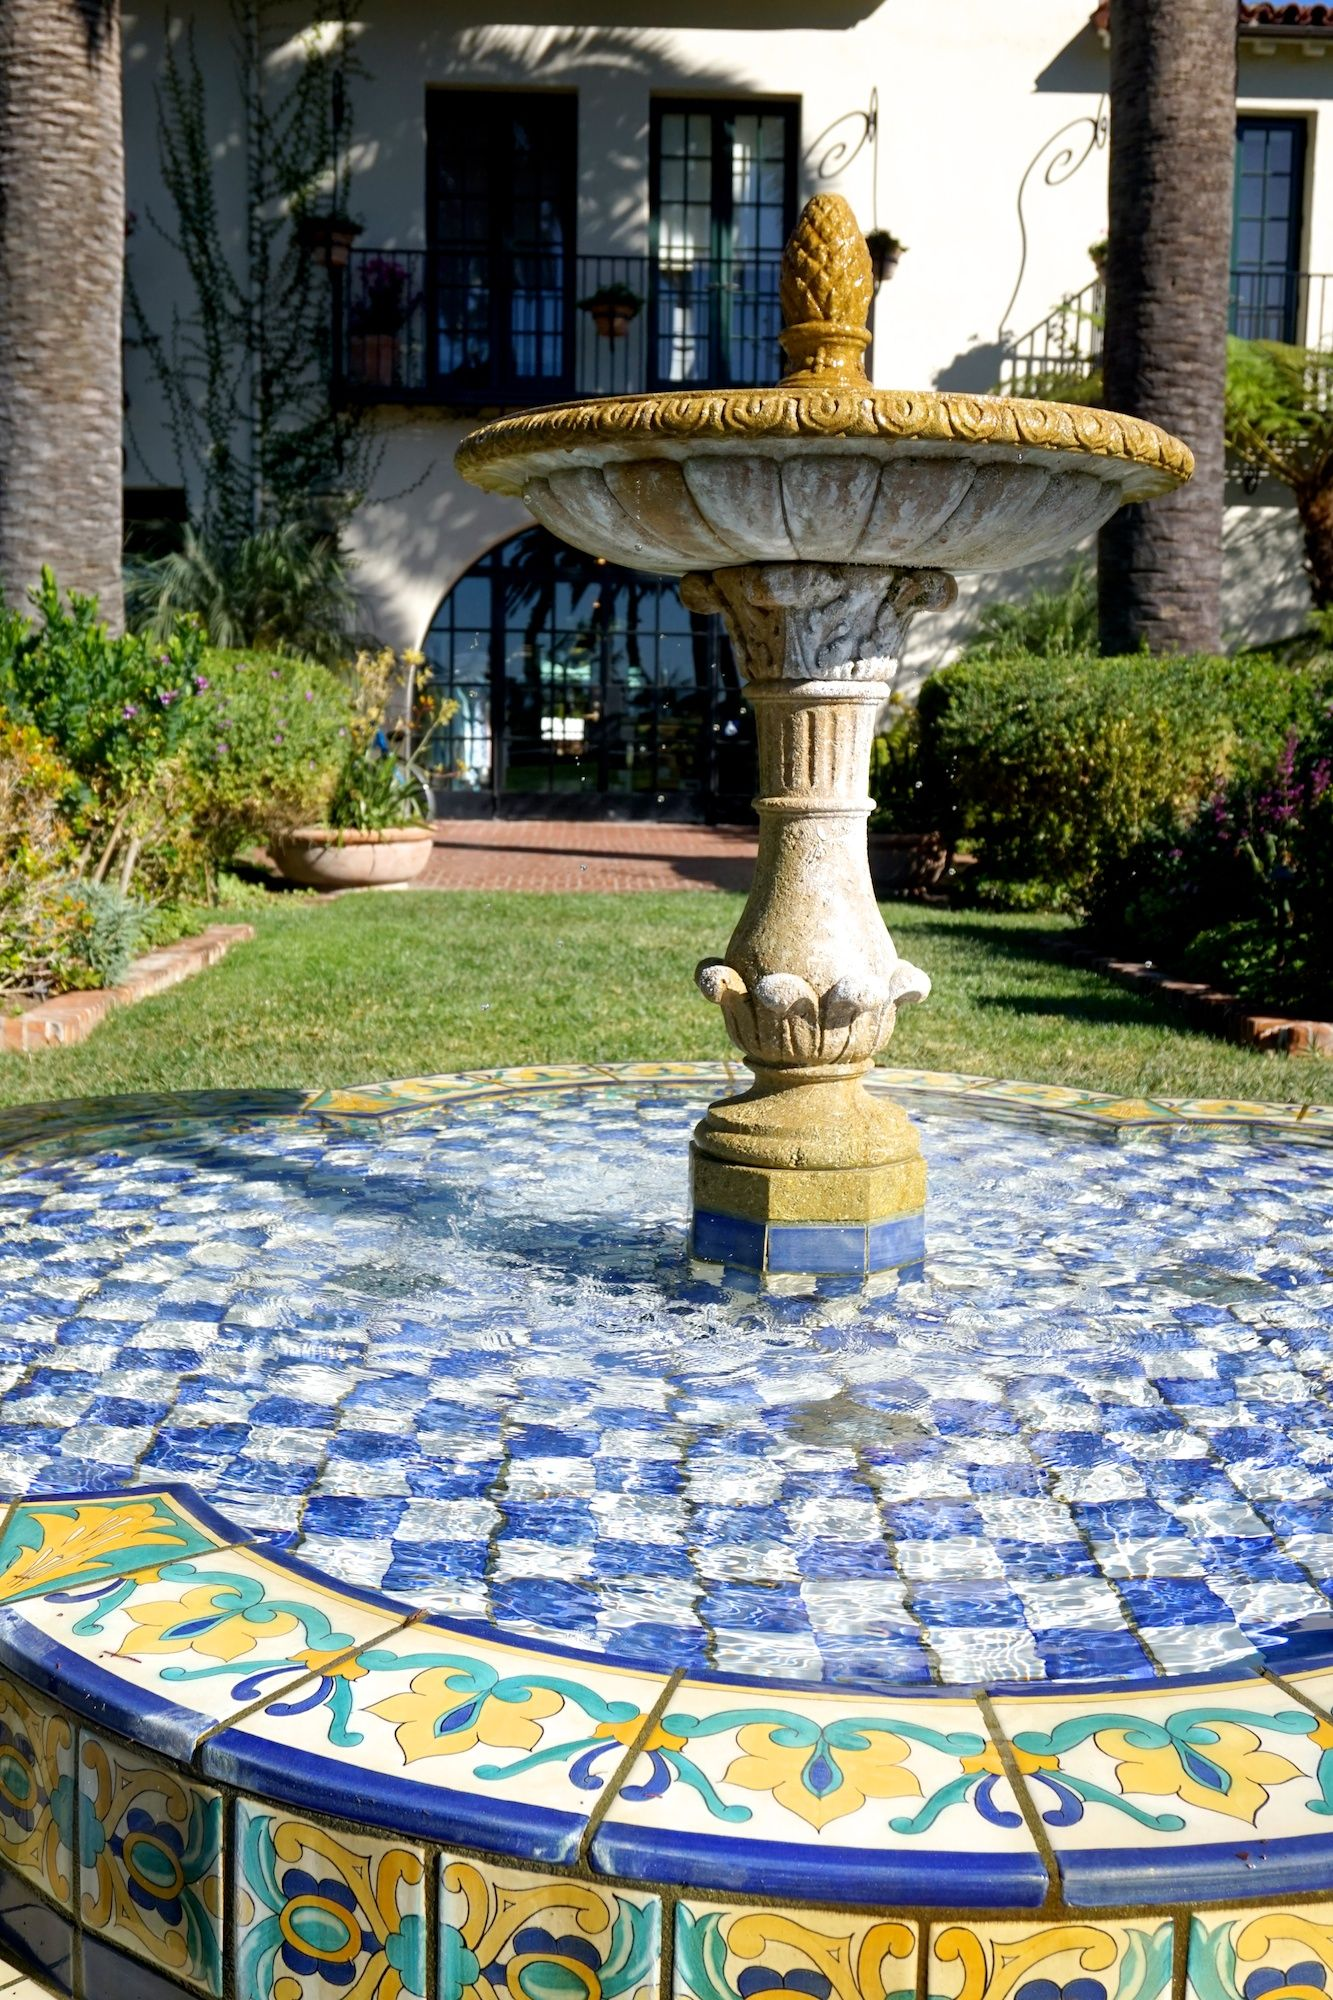 This Tiled Fountain At The Biltmore Hotel In Santa Barbara Is A Visual Treat 1926 When Bowman Hotels Corporation Hired Johnson To Design